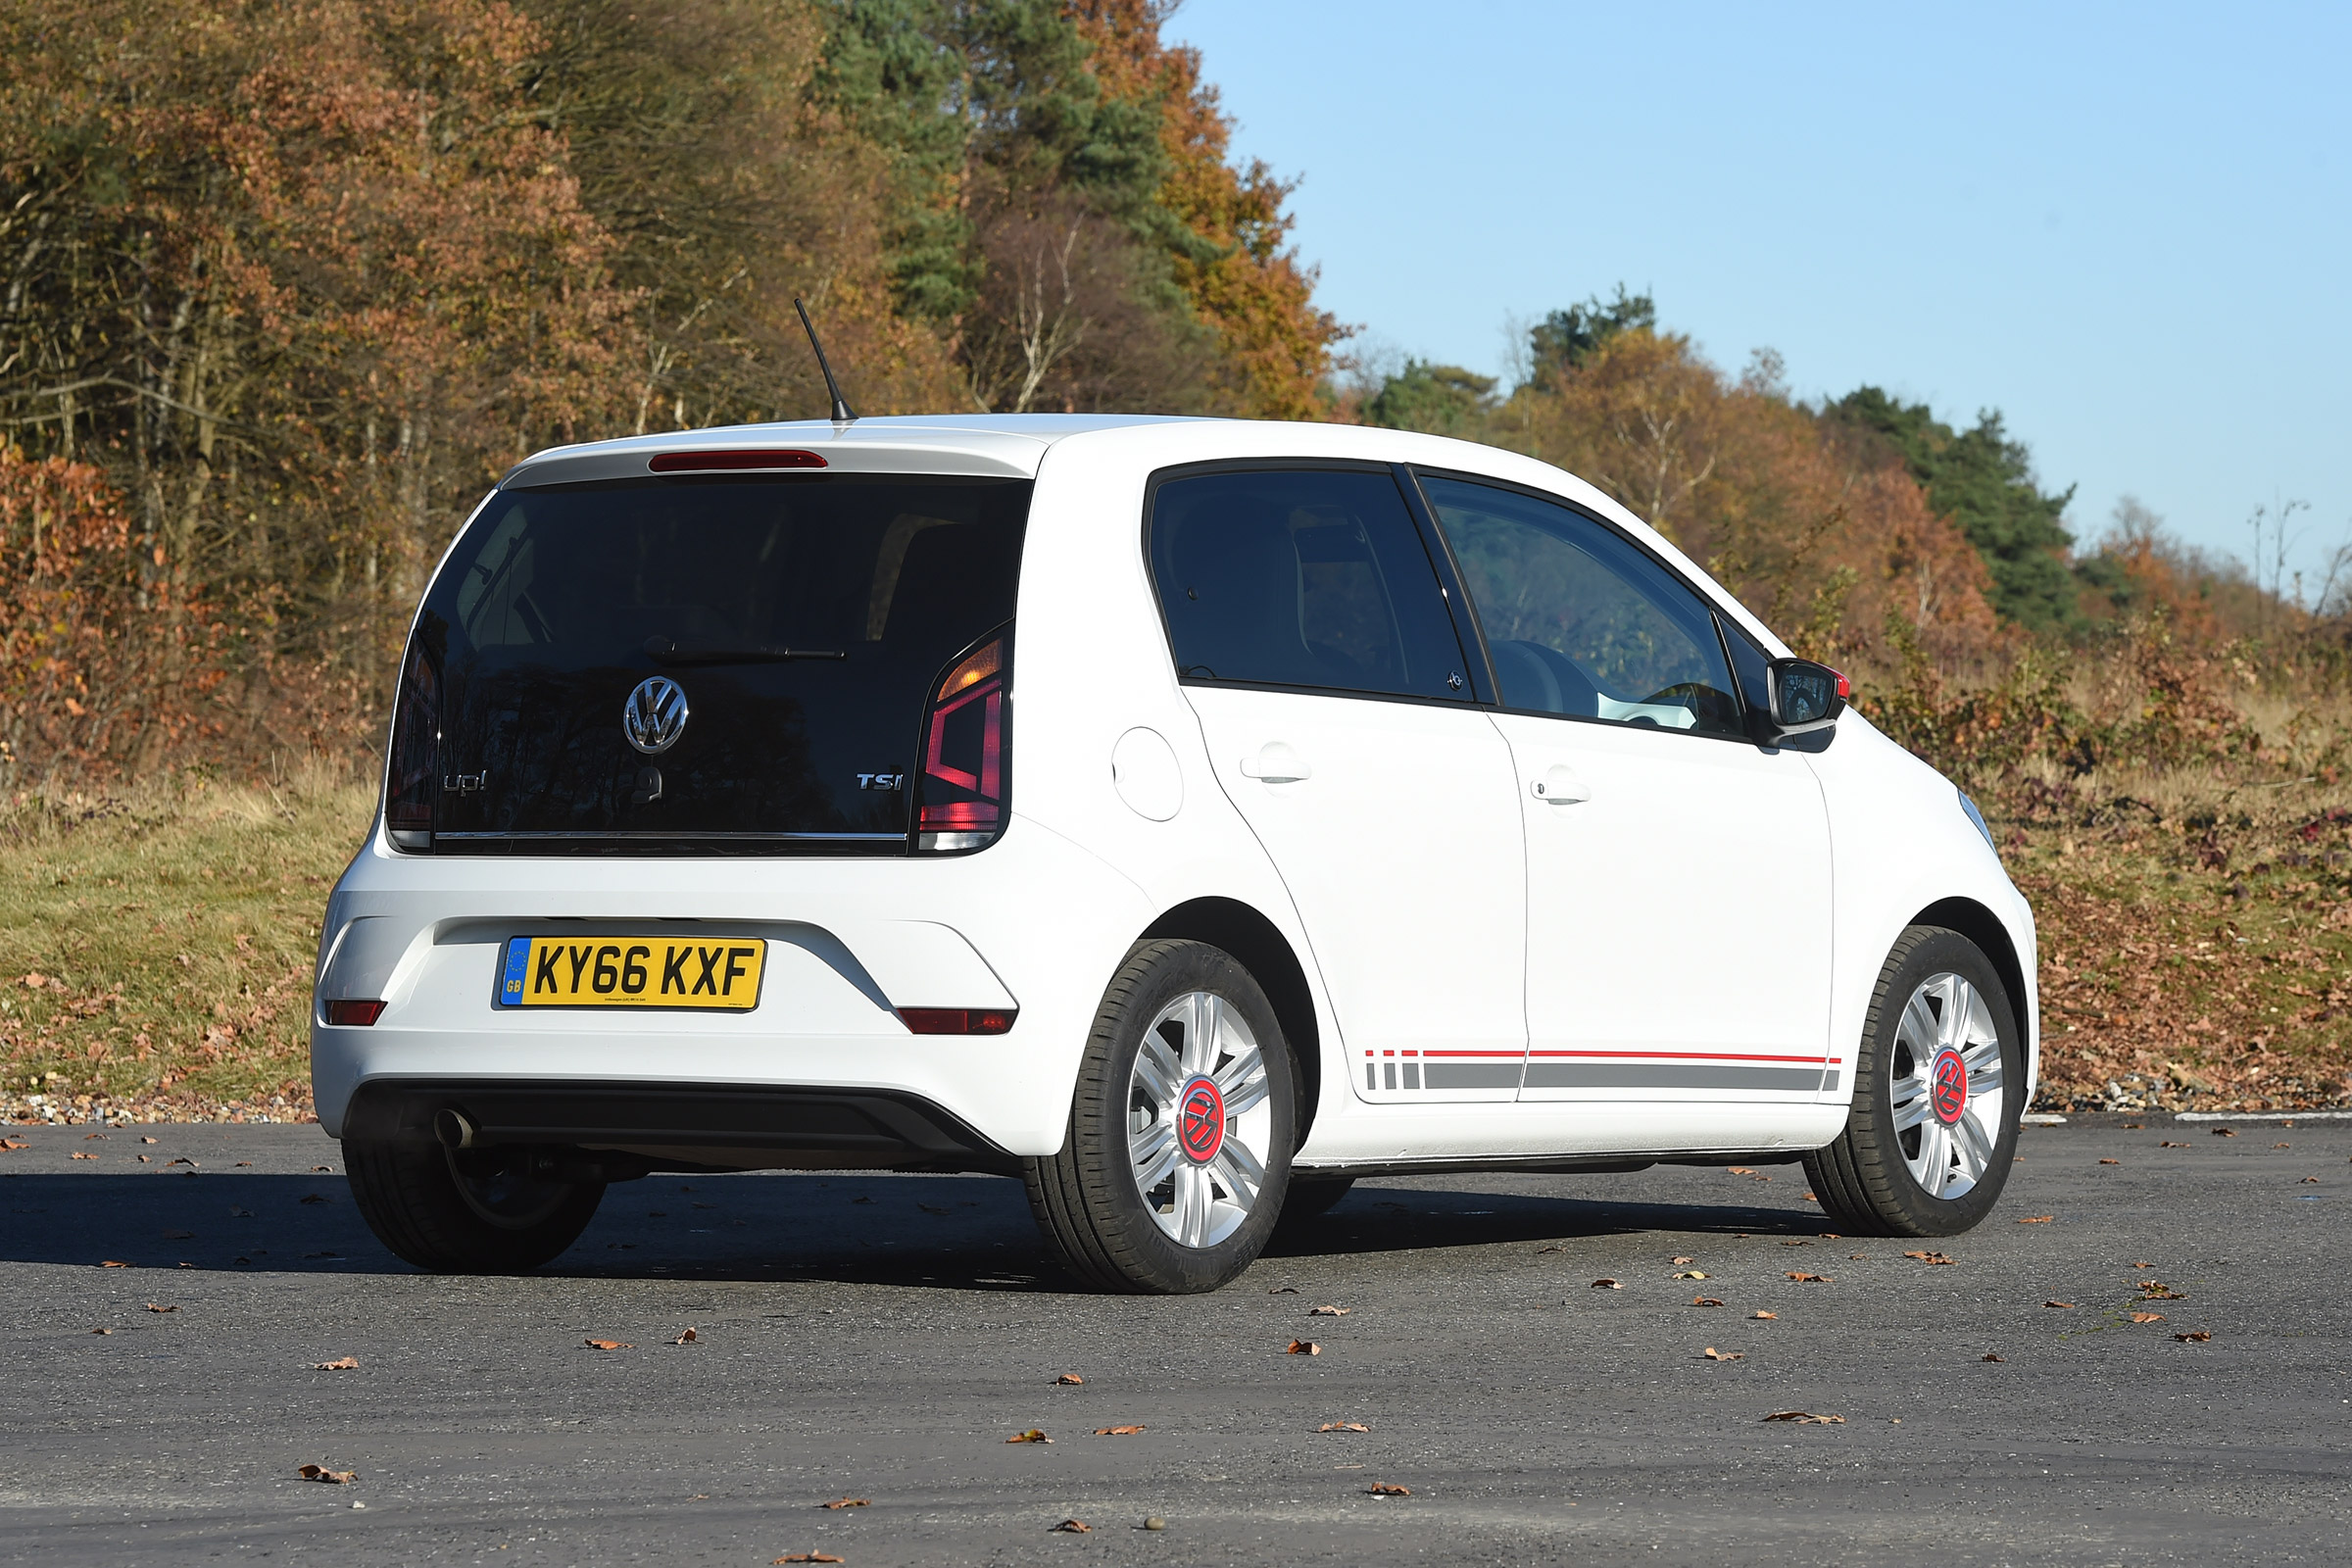 2017 Volkswagen Up Exterior White Rear And Side (Photo 3 of 15)